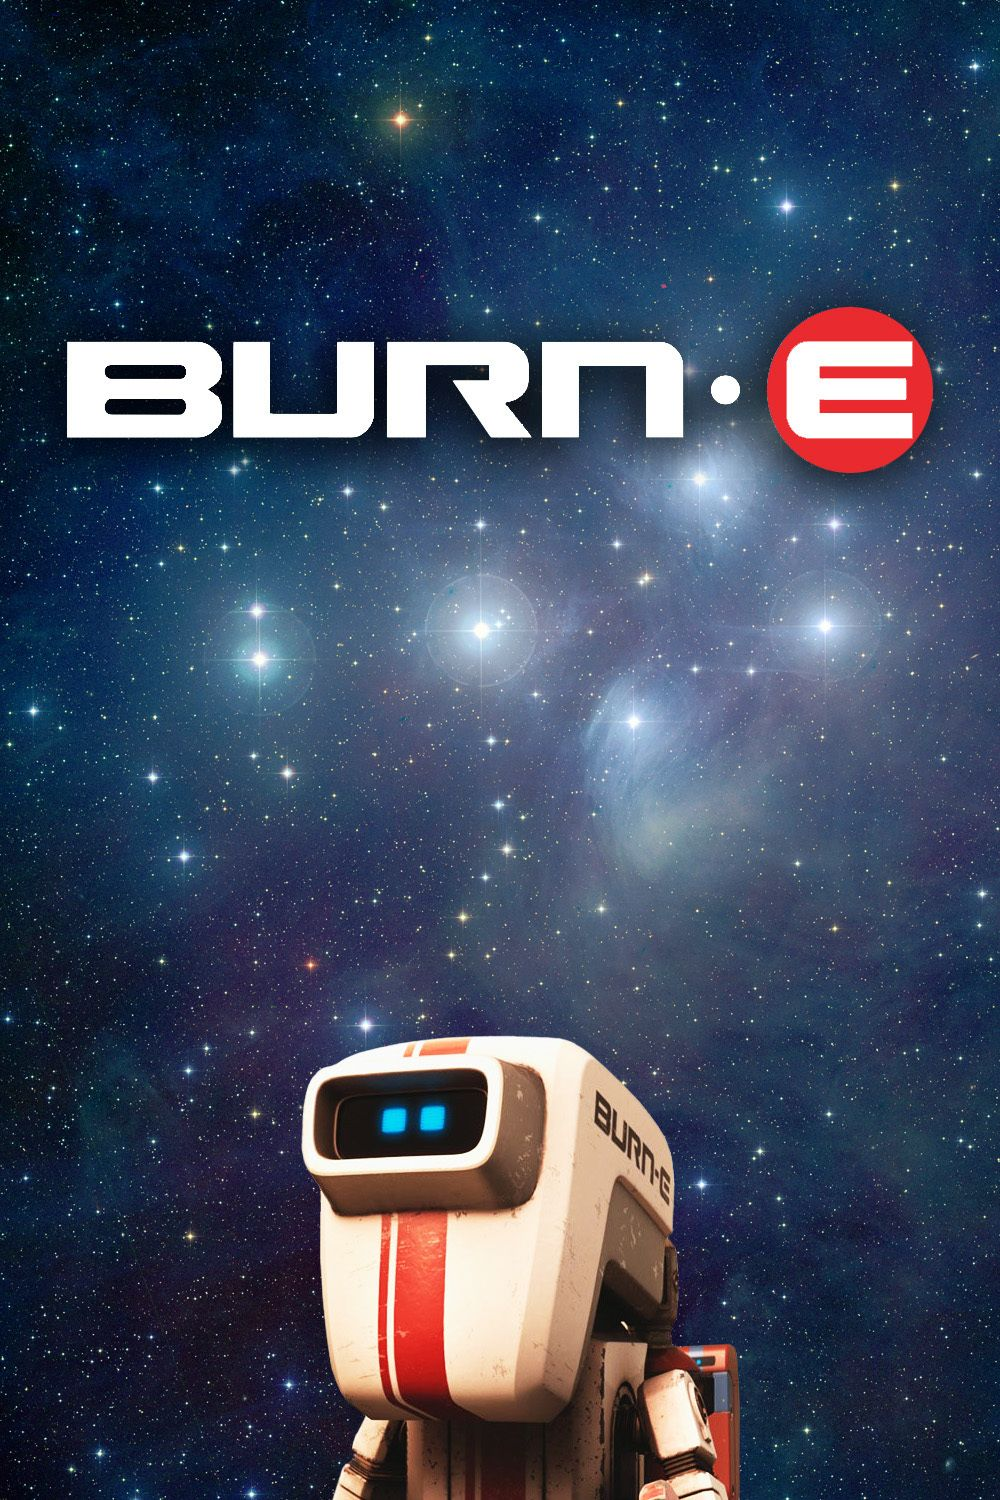 If Burn E A Welding Robot Had Known How Much Trouble He D Be Caused By Wall E S Pursuit Of Eve T Streaming Movies Streaming Movies Online Free Movies Online